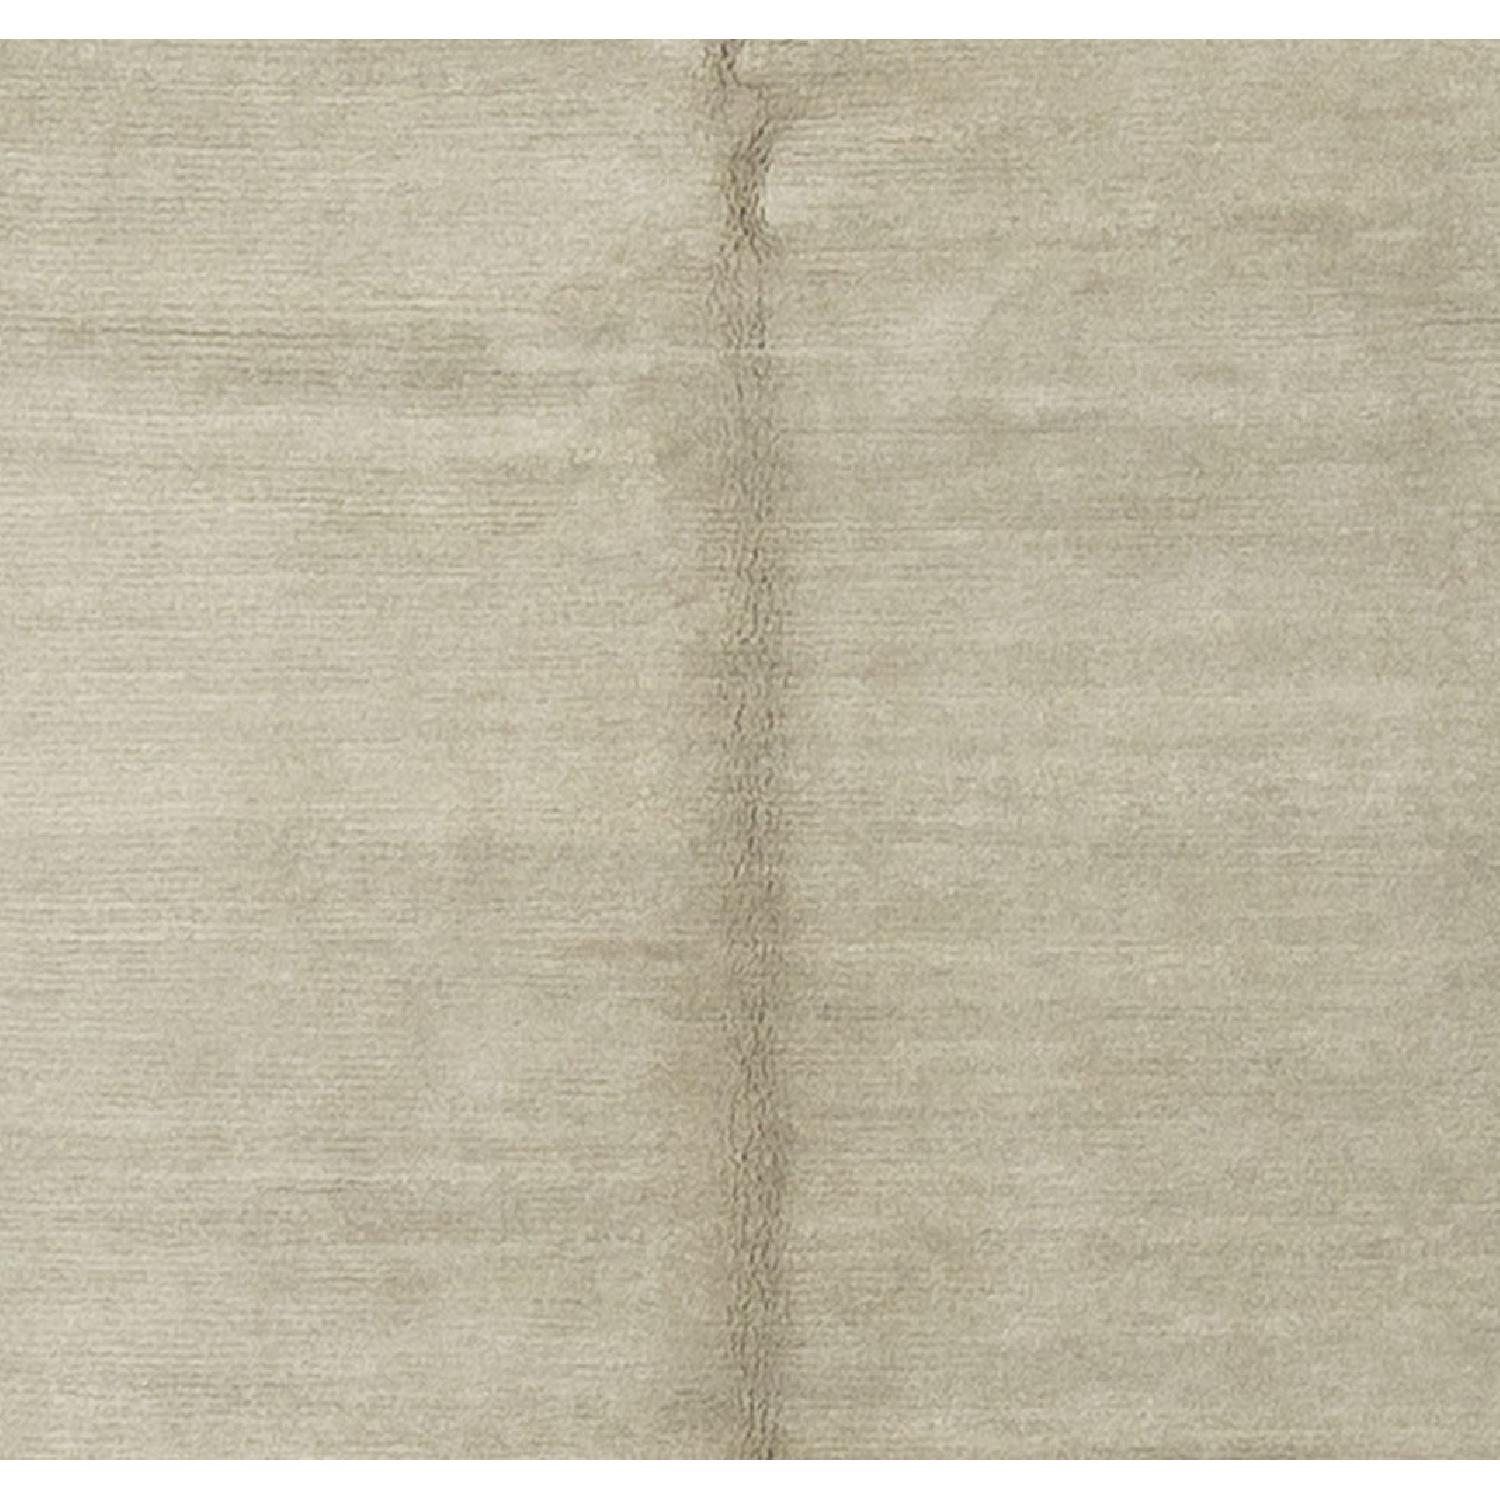 Modern Contemporary Hand Knotted Wool Rug in Multi Colors - image-1